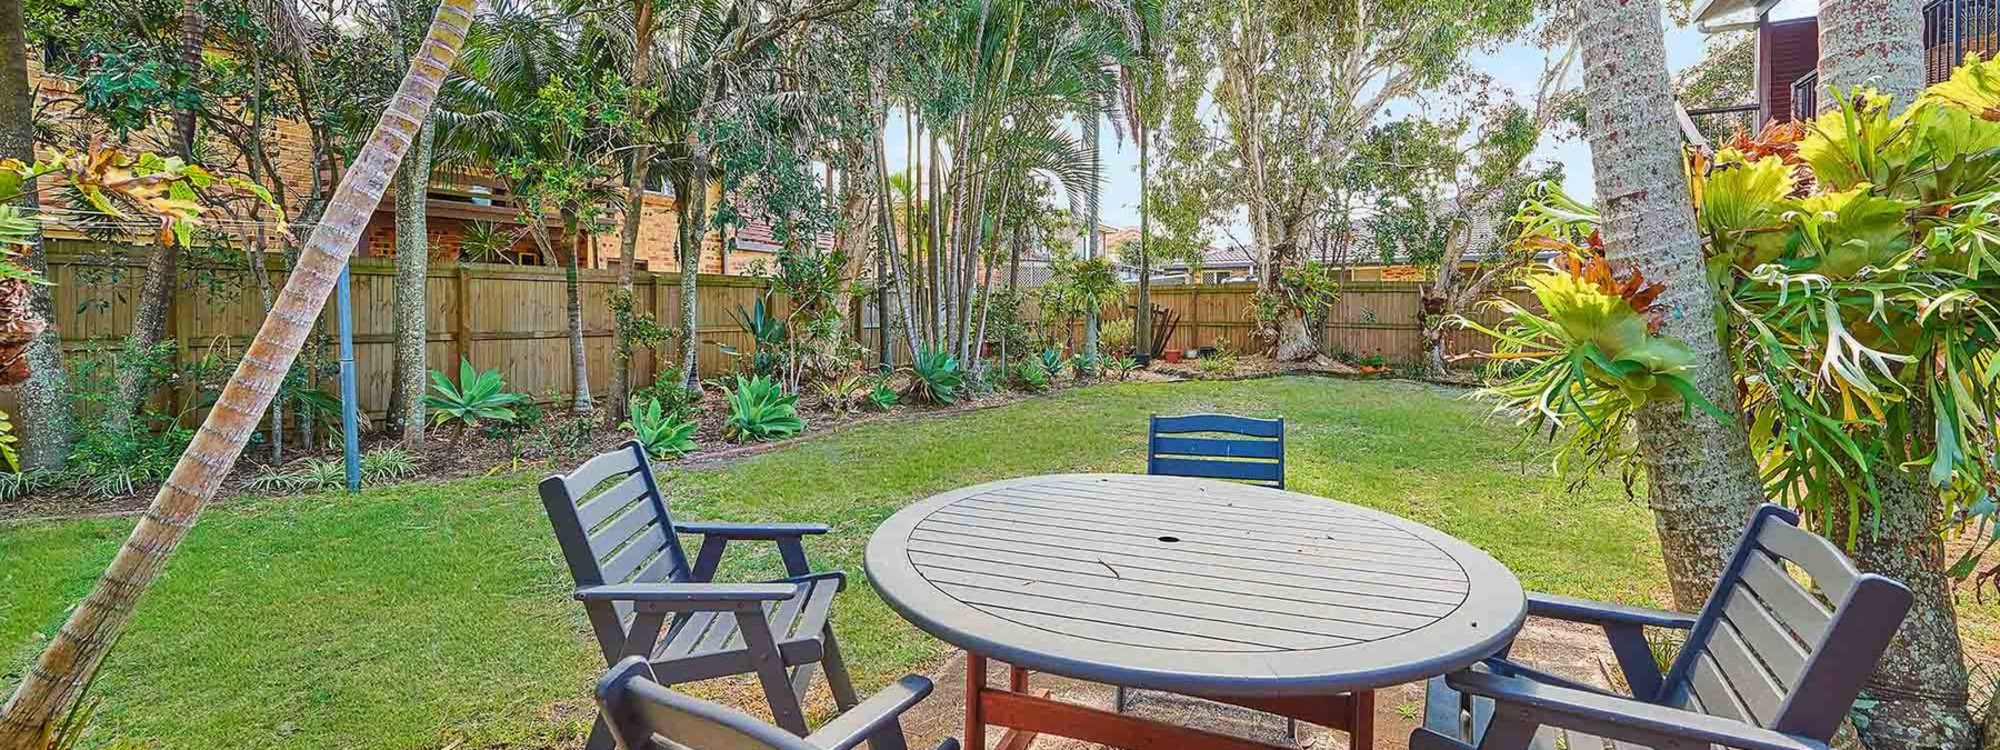 Sea Breeze - Lennox Head - Backyard with Table